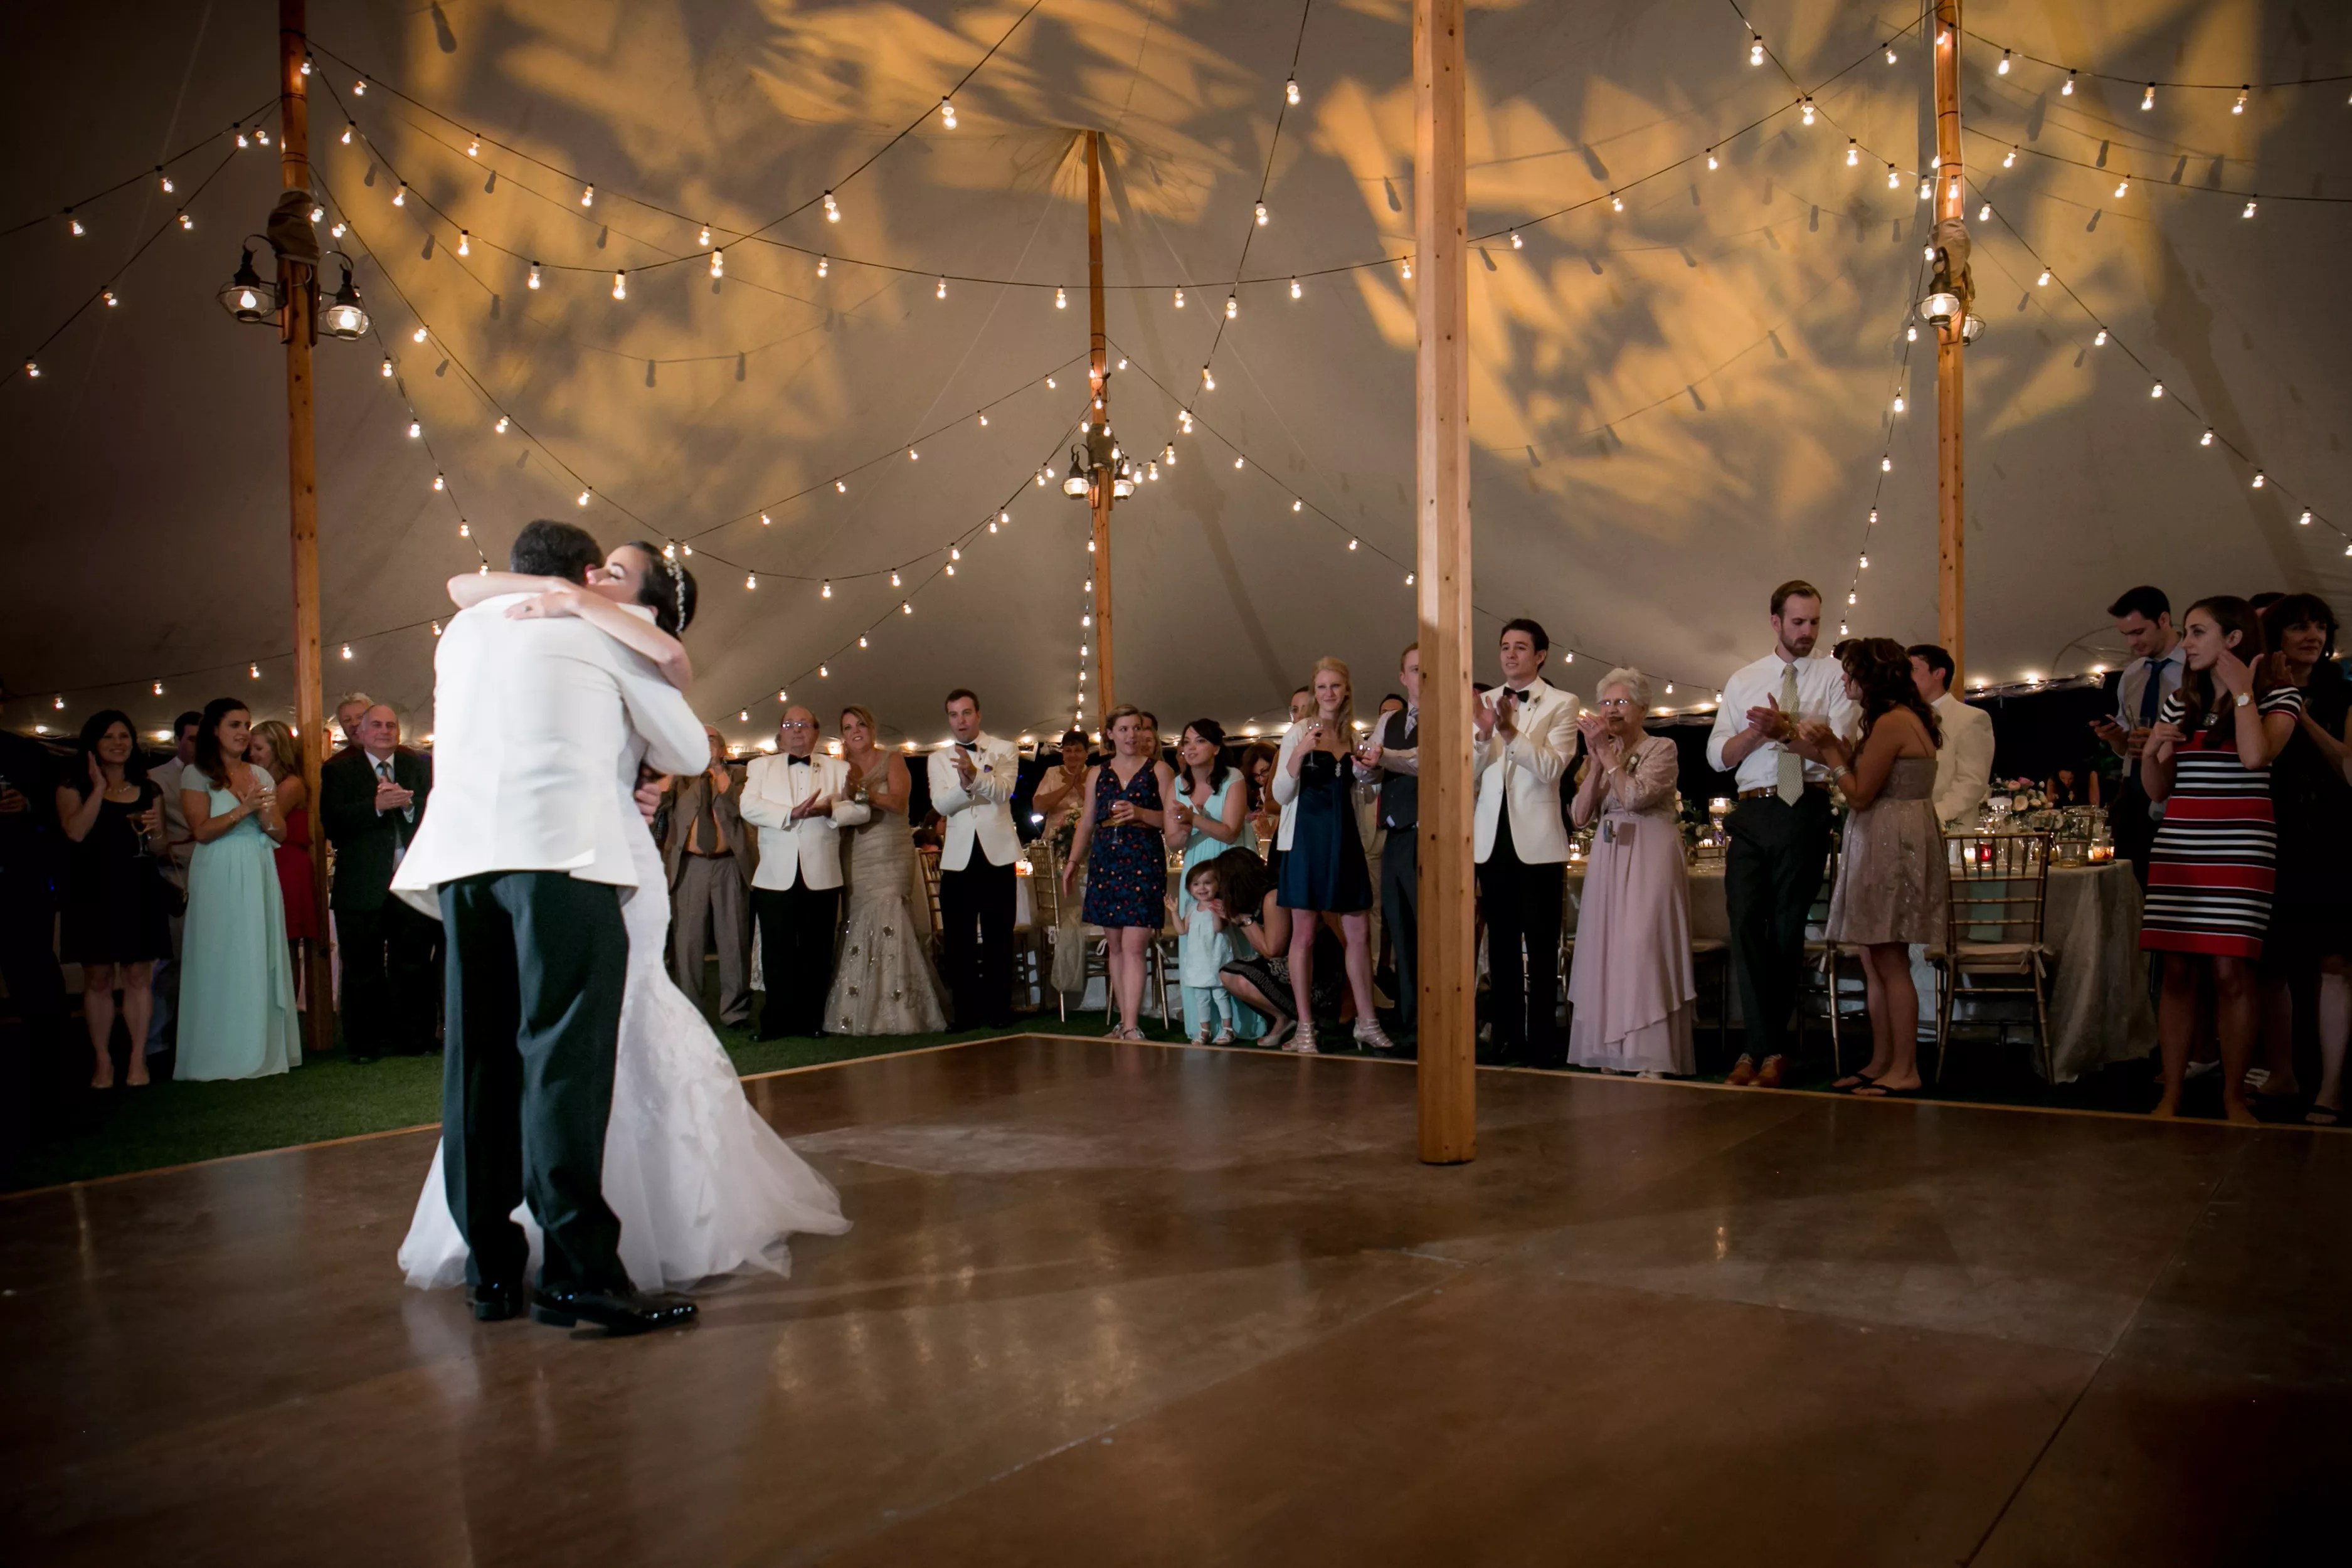 First Dance To Baby I Love Your Way By Peter Frampton